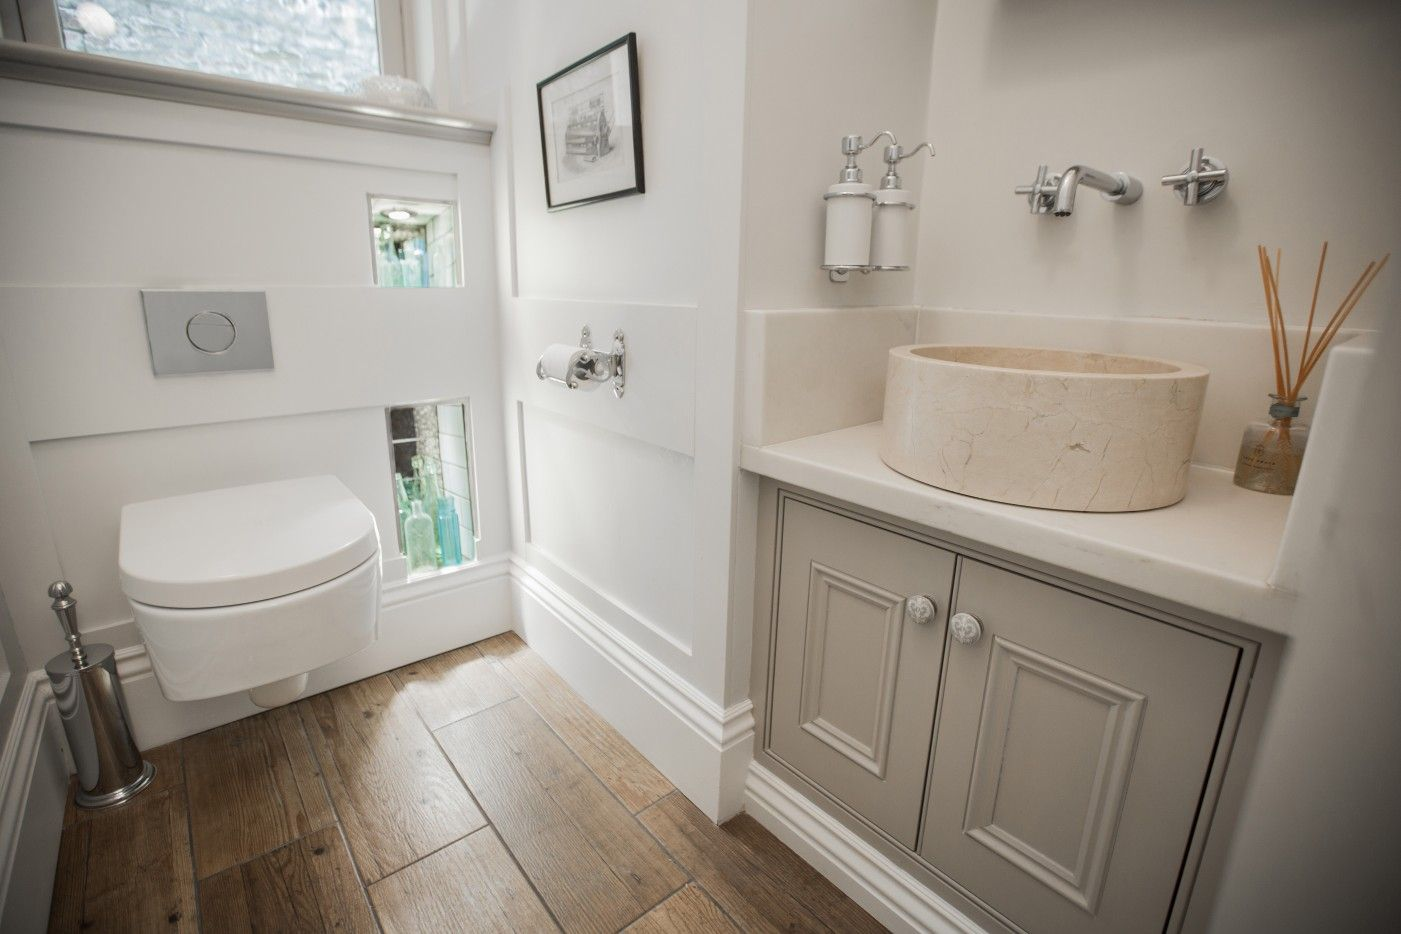 Period Bathroom Painted In Farrow And Ball Elephants Breath All White And Strong White Wooden Tile Effect Flooring And Painting Bathroom Wooden Tile Bathroom